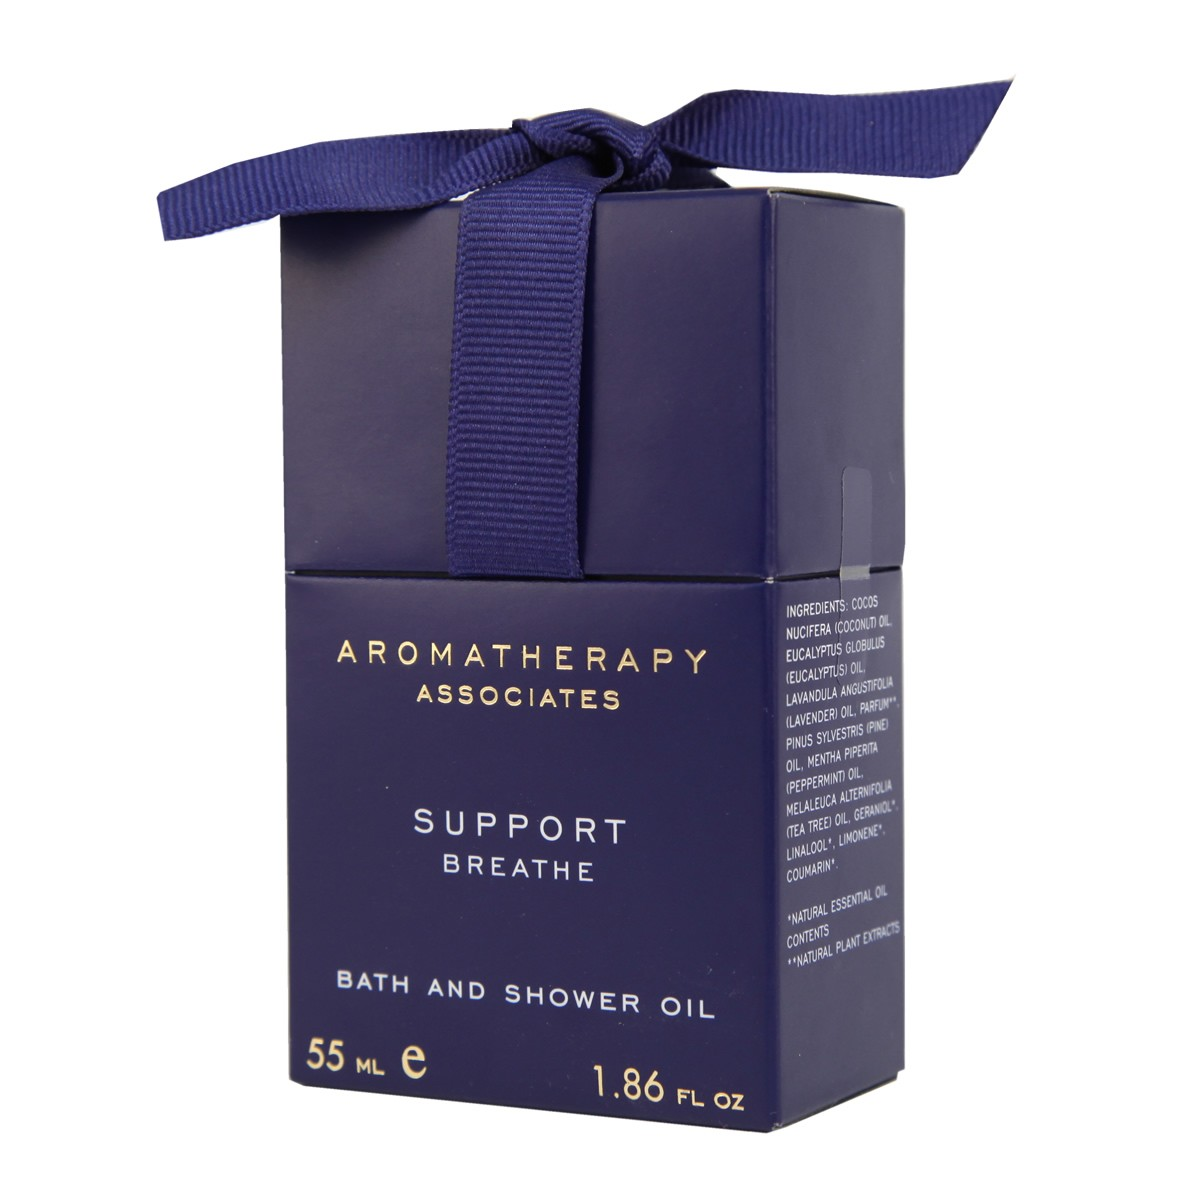 Aromatherapy Associates Support Breathe Bath & Shower Oil